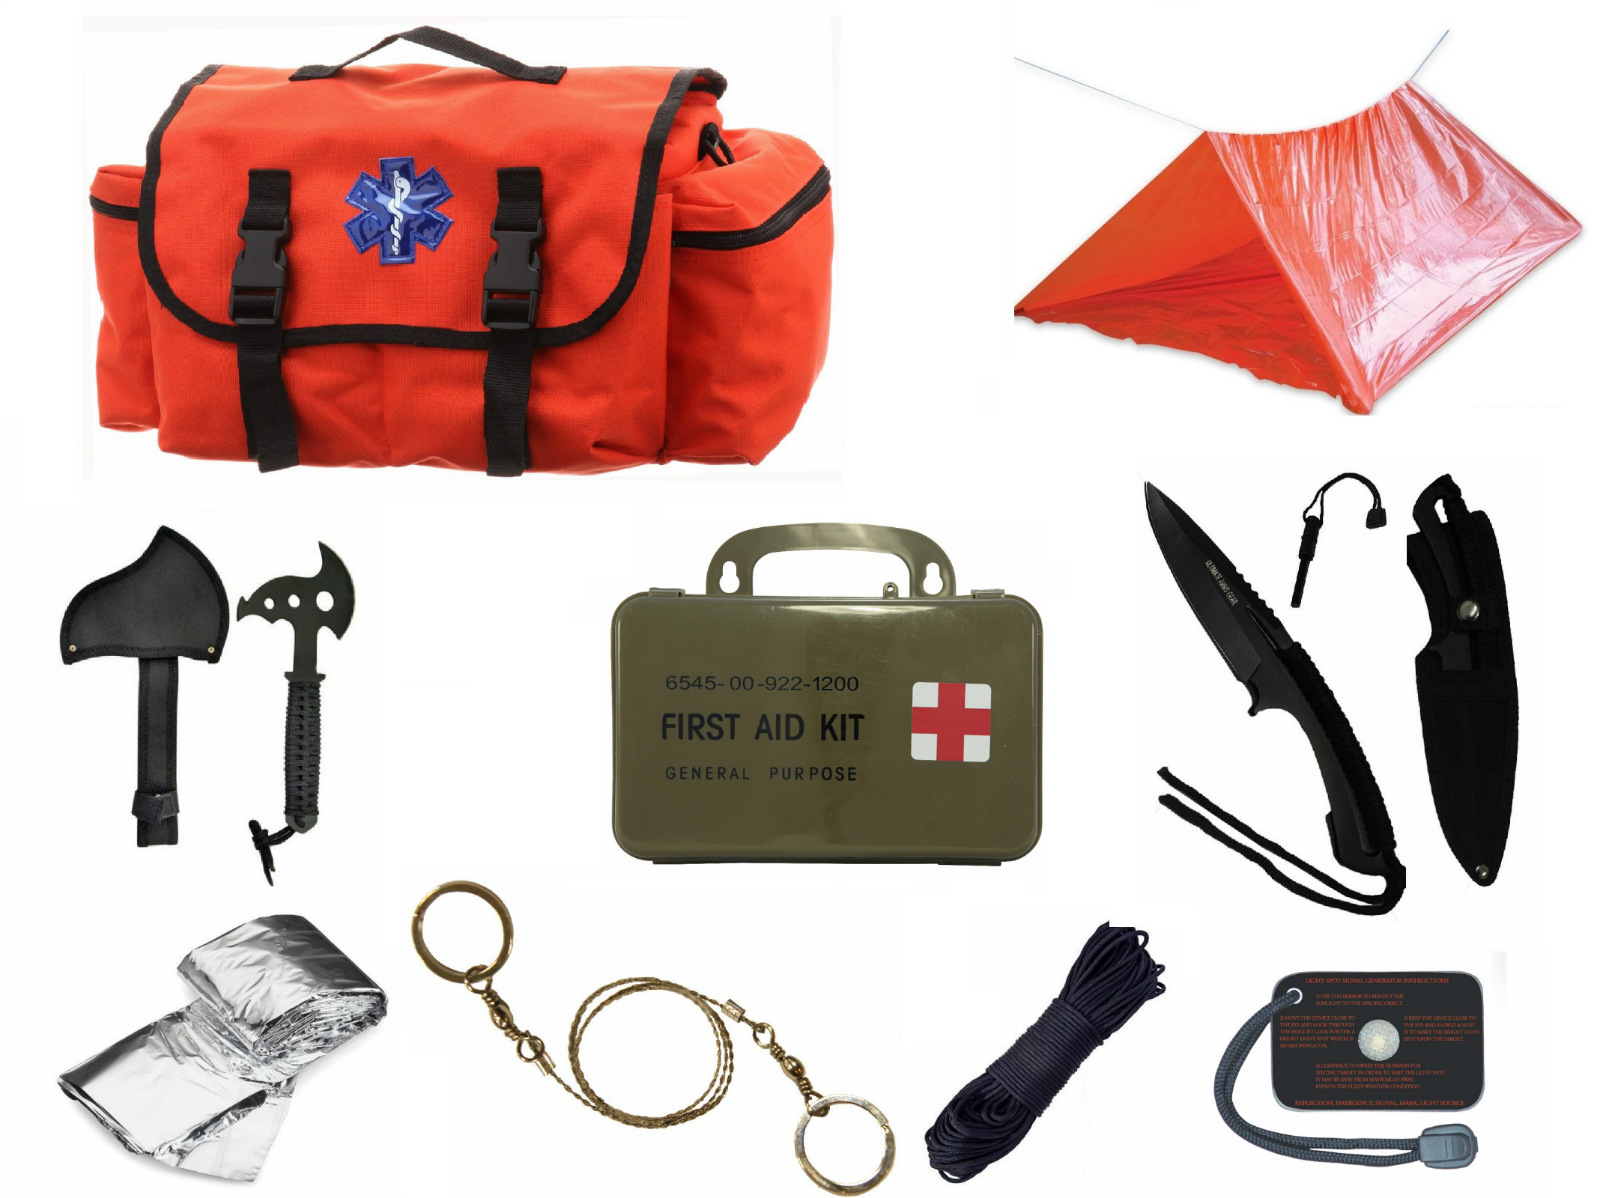 Click here to buy Ultimate Arms Gear Deluxe Orange Emergency Survival Rescue Bag Kit; Signal Mirror, Polarshield Blanket, Knife Fire....